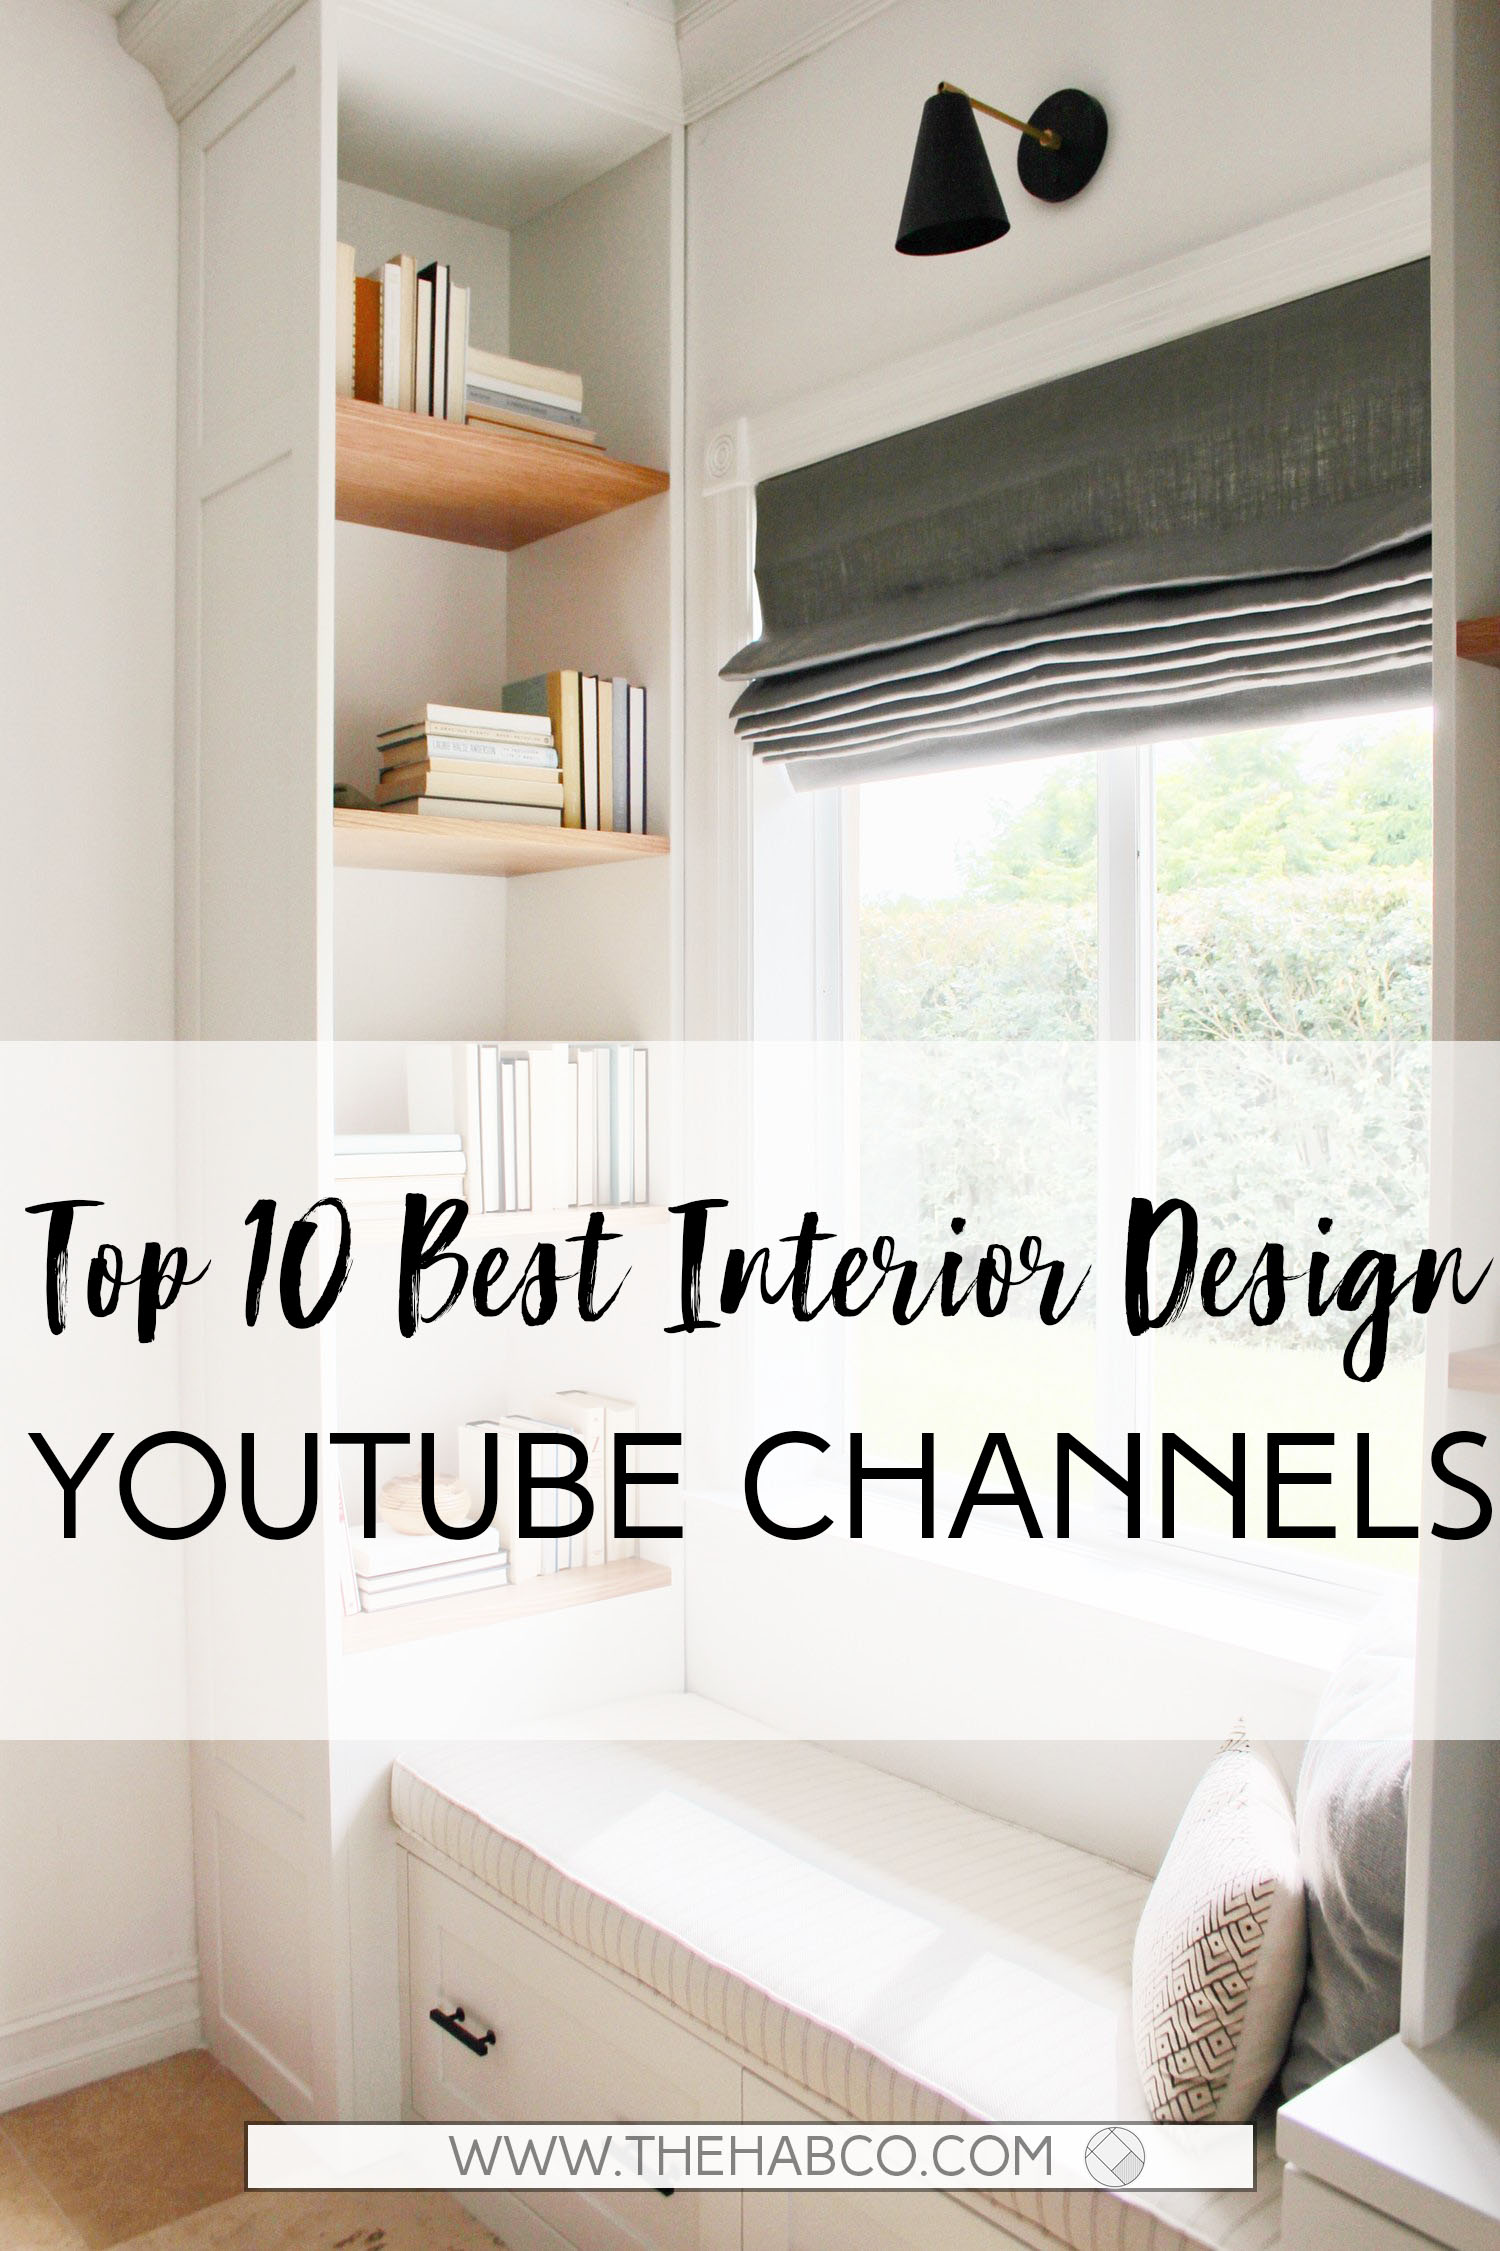 Top 17 Best Interior Design YouTube Channels — The Habitat